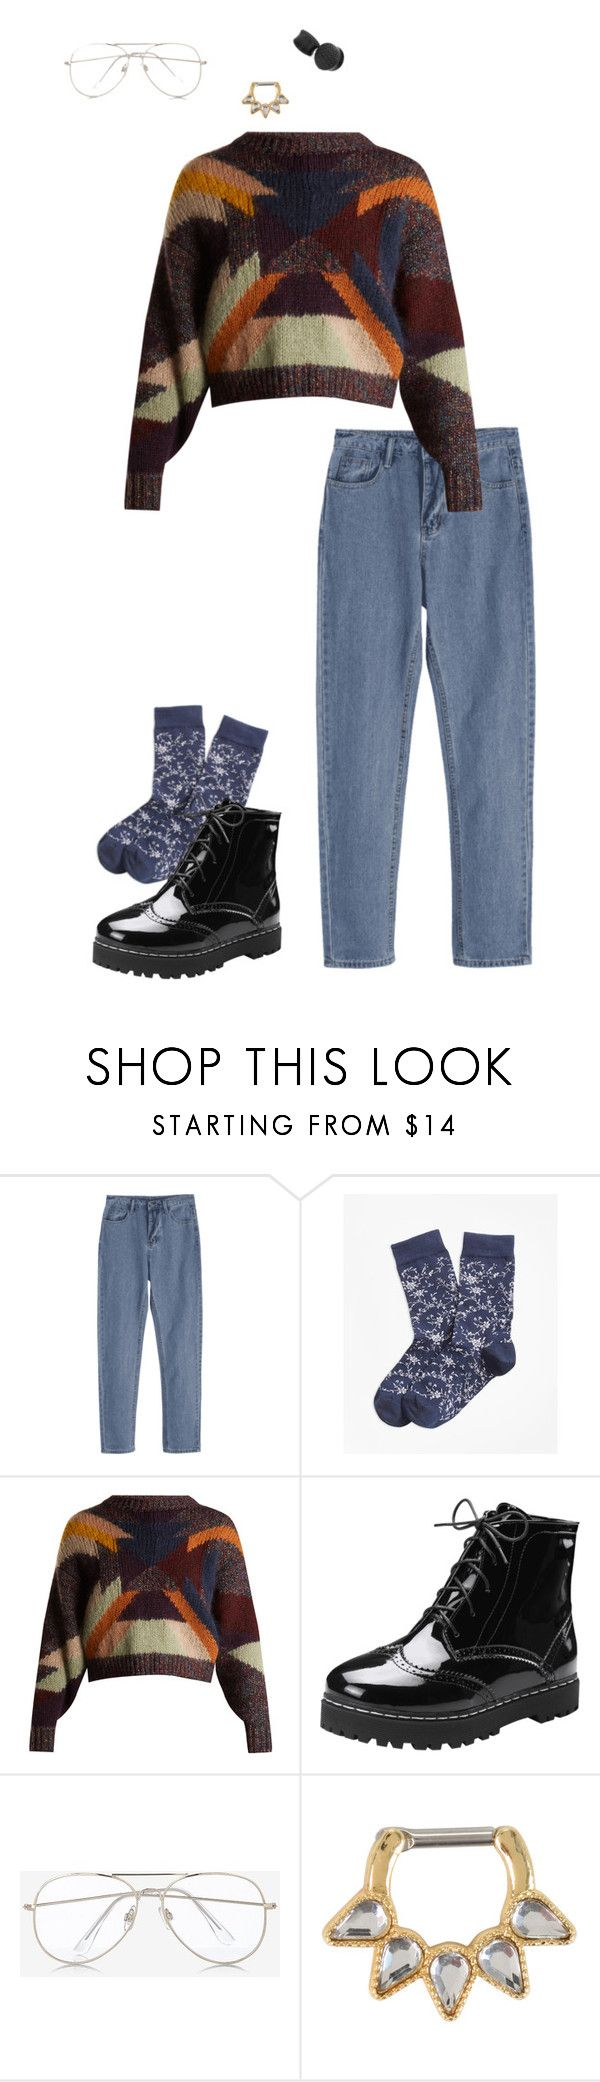 """""""Sweater Weather"""" by burnttoasts on Polyvore featuring Brooks Brothers, Isabel Marant, Express and Hot Topic"""